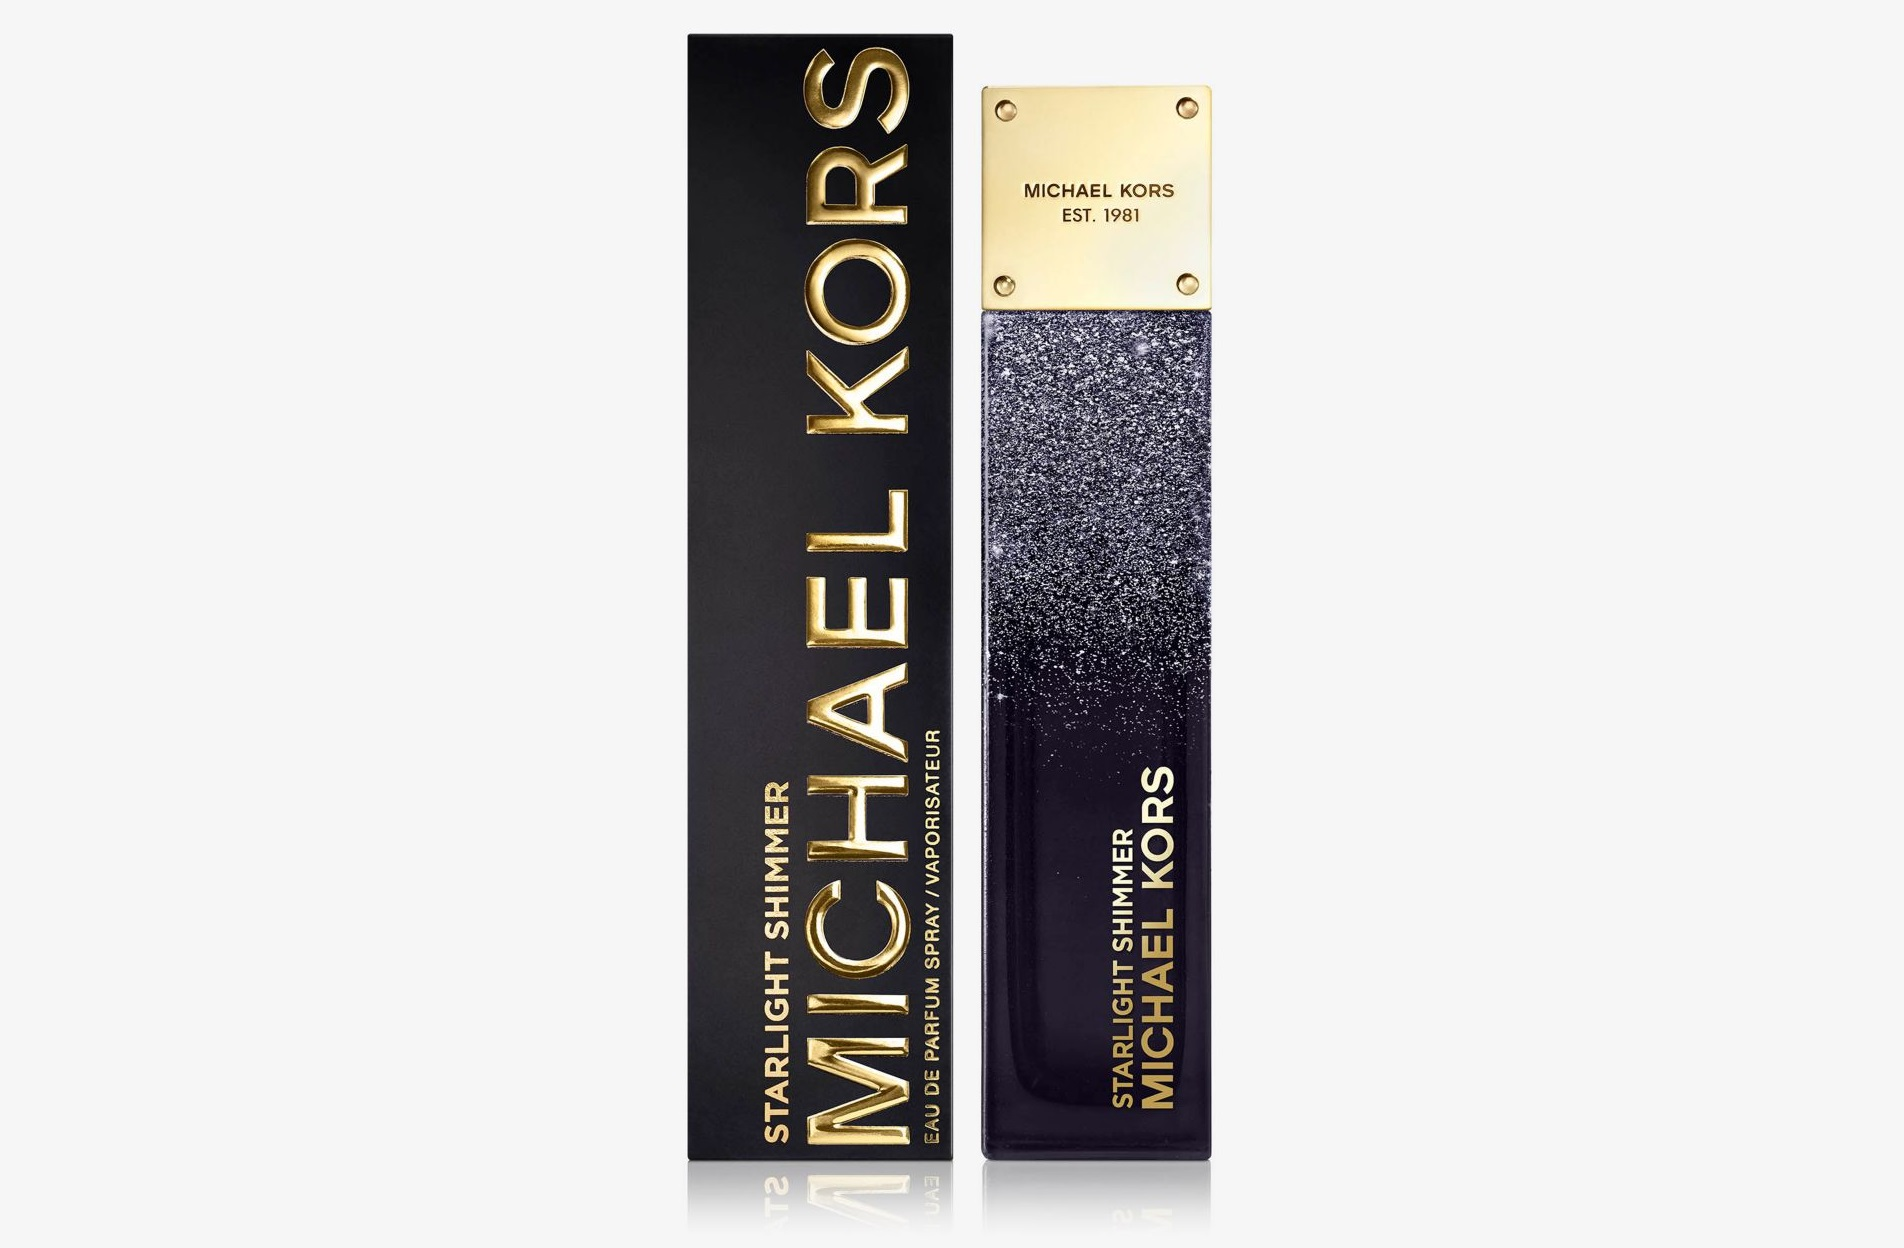 Michael Kors Starlight Shimme 100 mL